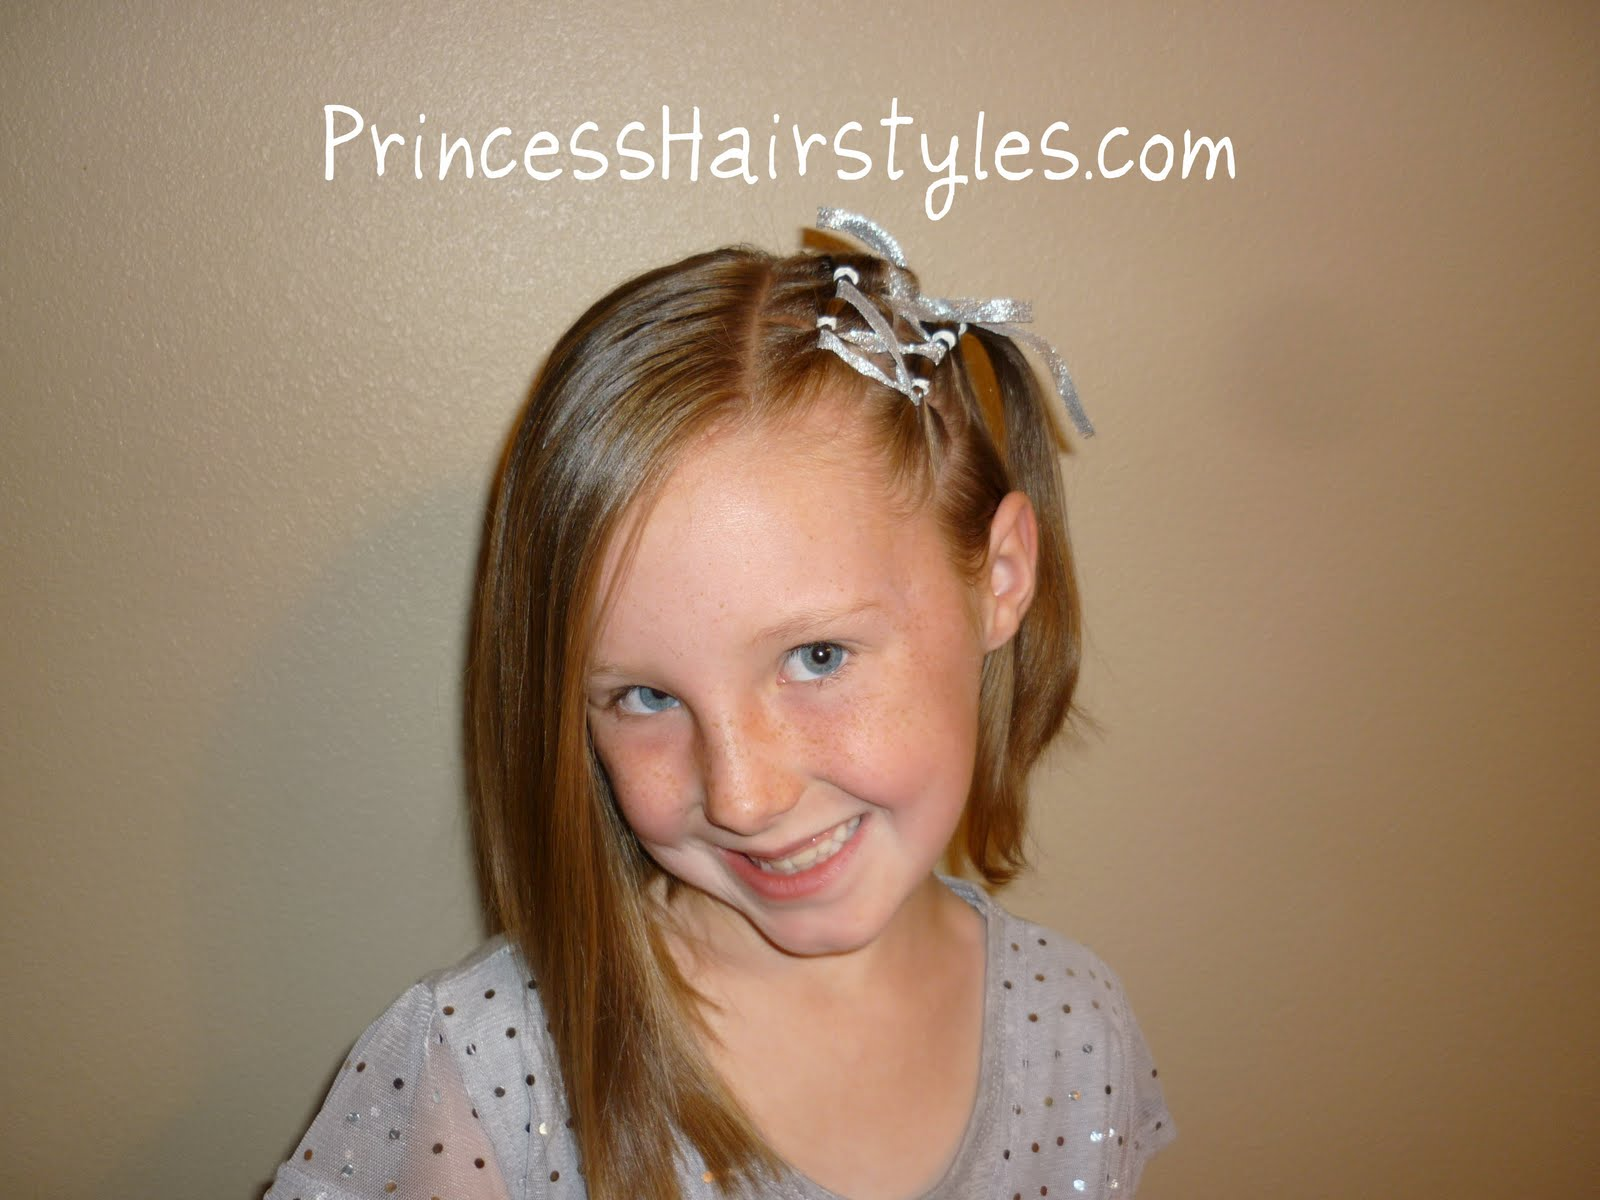 Ribbon Lacing For Short Hair Hairstyles For Girls Princess